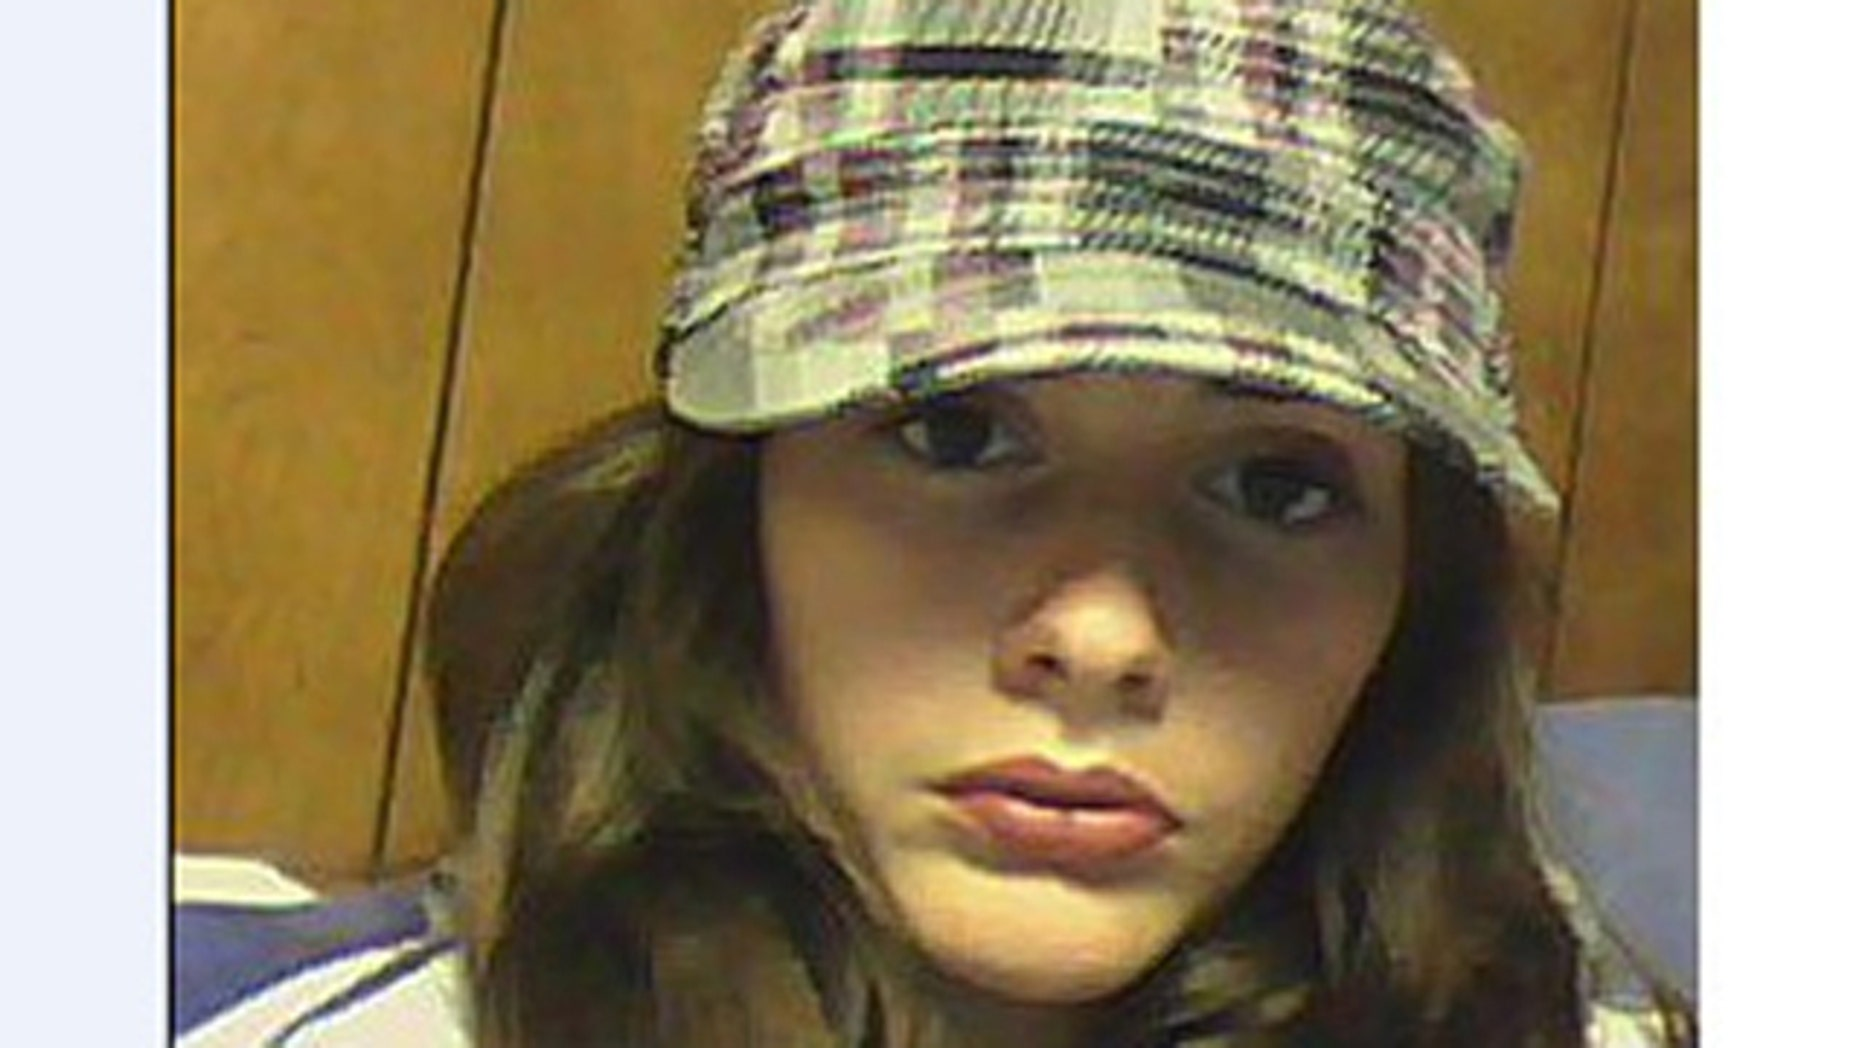 The last time Celina Cass, 11, was seen alive was inside her Stewartstown, N.H., home near the U.S.-Canada border.